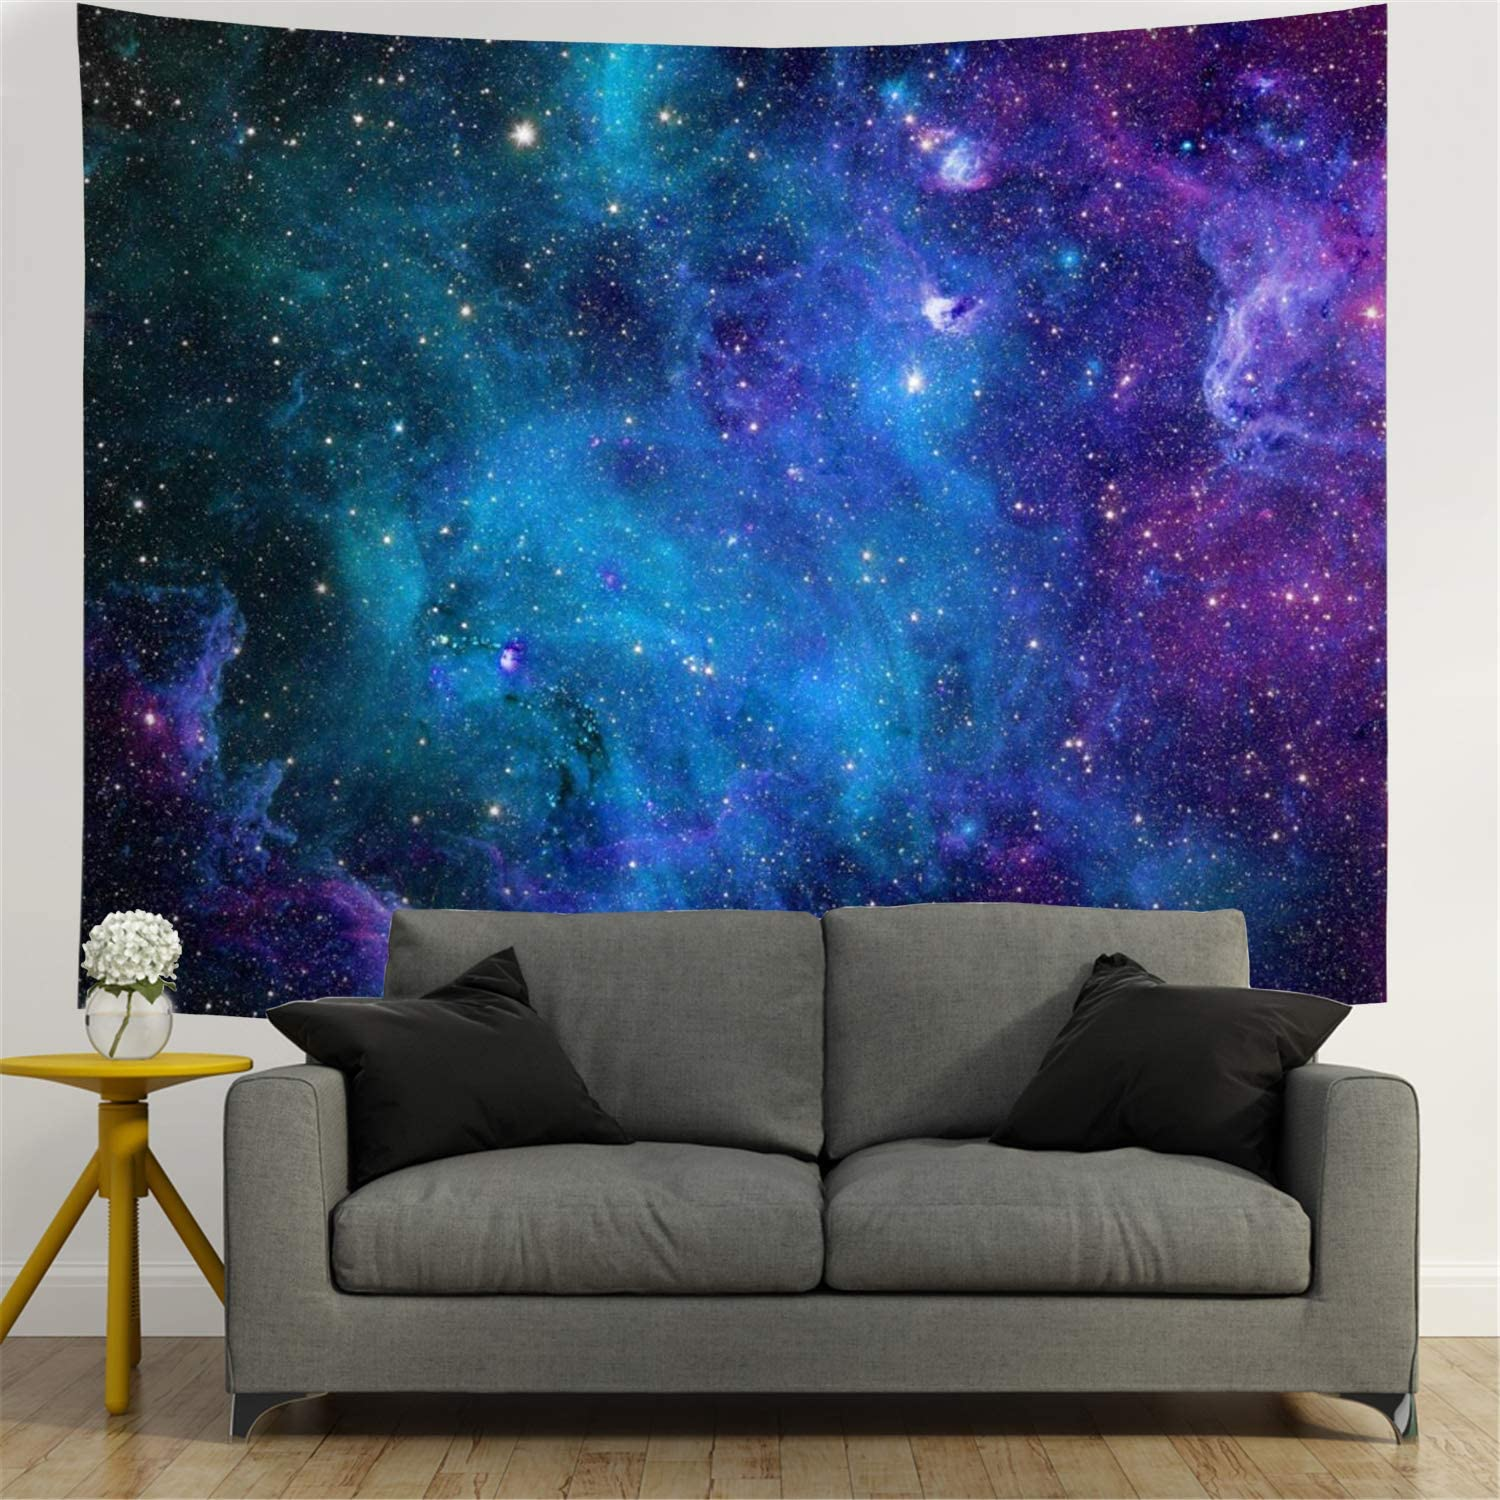 Starry Sky Wall Hanging Tapestry 3D Printing Art Tapestry for Living Room Bedroom Dorm Decor-150x130CM GZGZADMC Galaxy Wall Hanging Tapestry Outer Space Polyester Tapestries